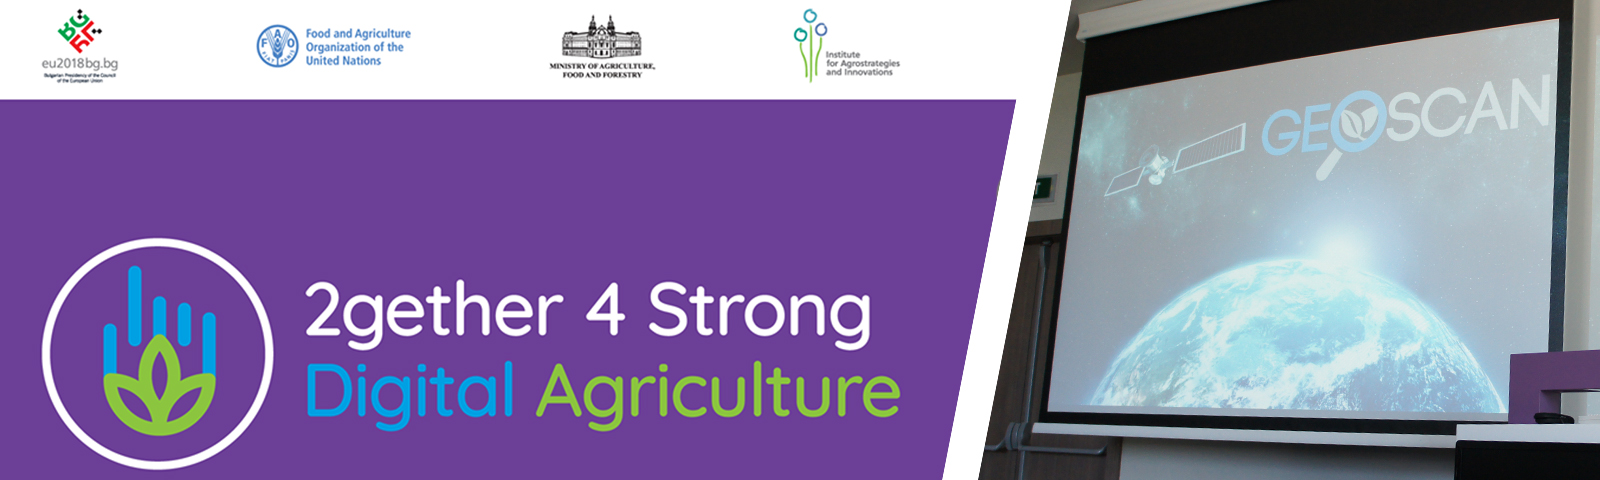 "GeoSCAN на форума за дигитално земеделие ""2gether 4 Strong Digital Agriculture"""